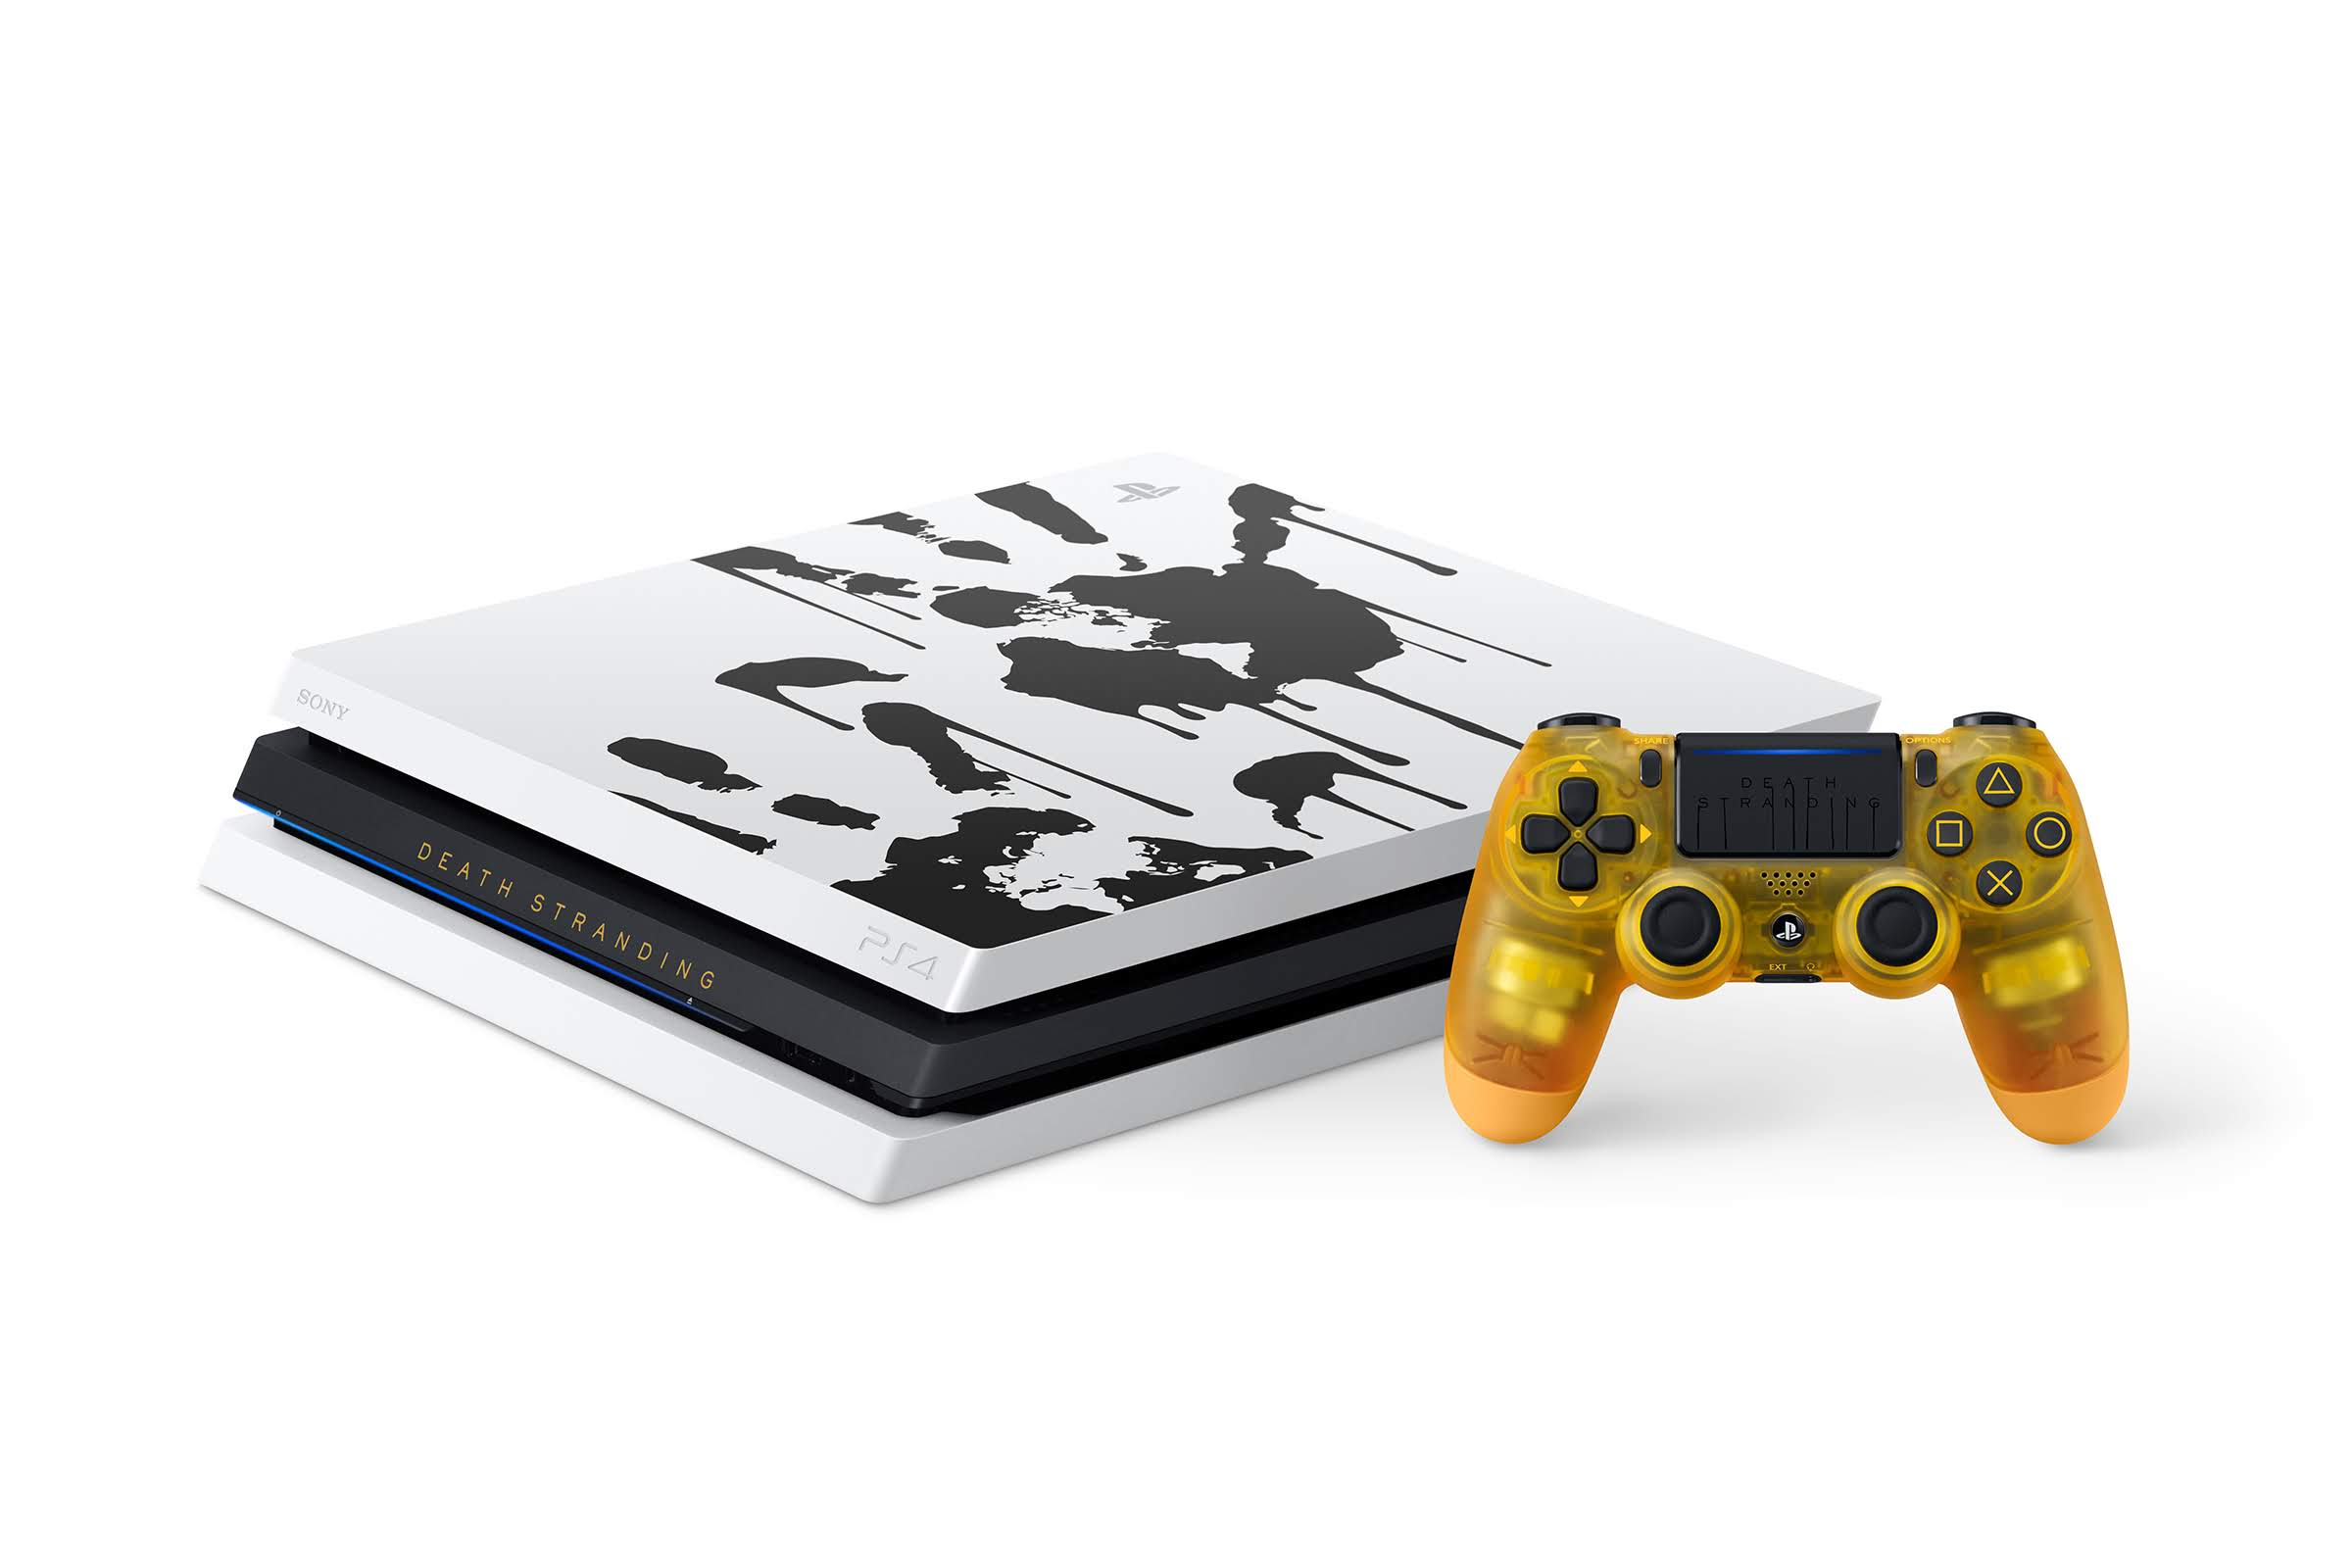 Limited Edition Death Stranding PS4 Pro Bundle Image 2